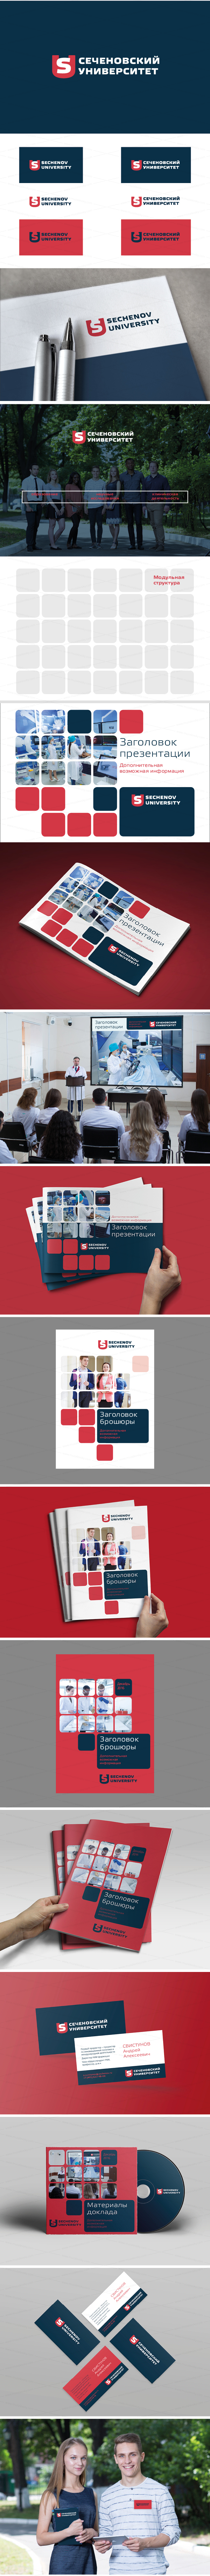 Identity-Sechenov-University-my